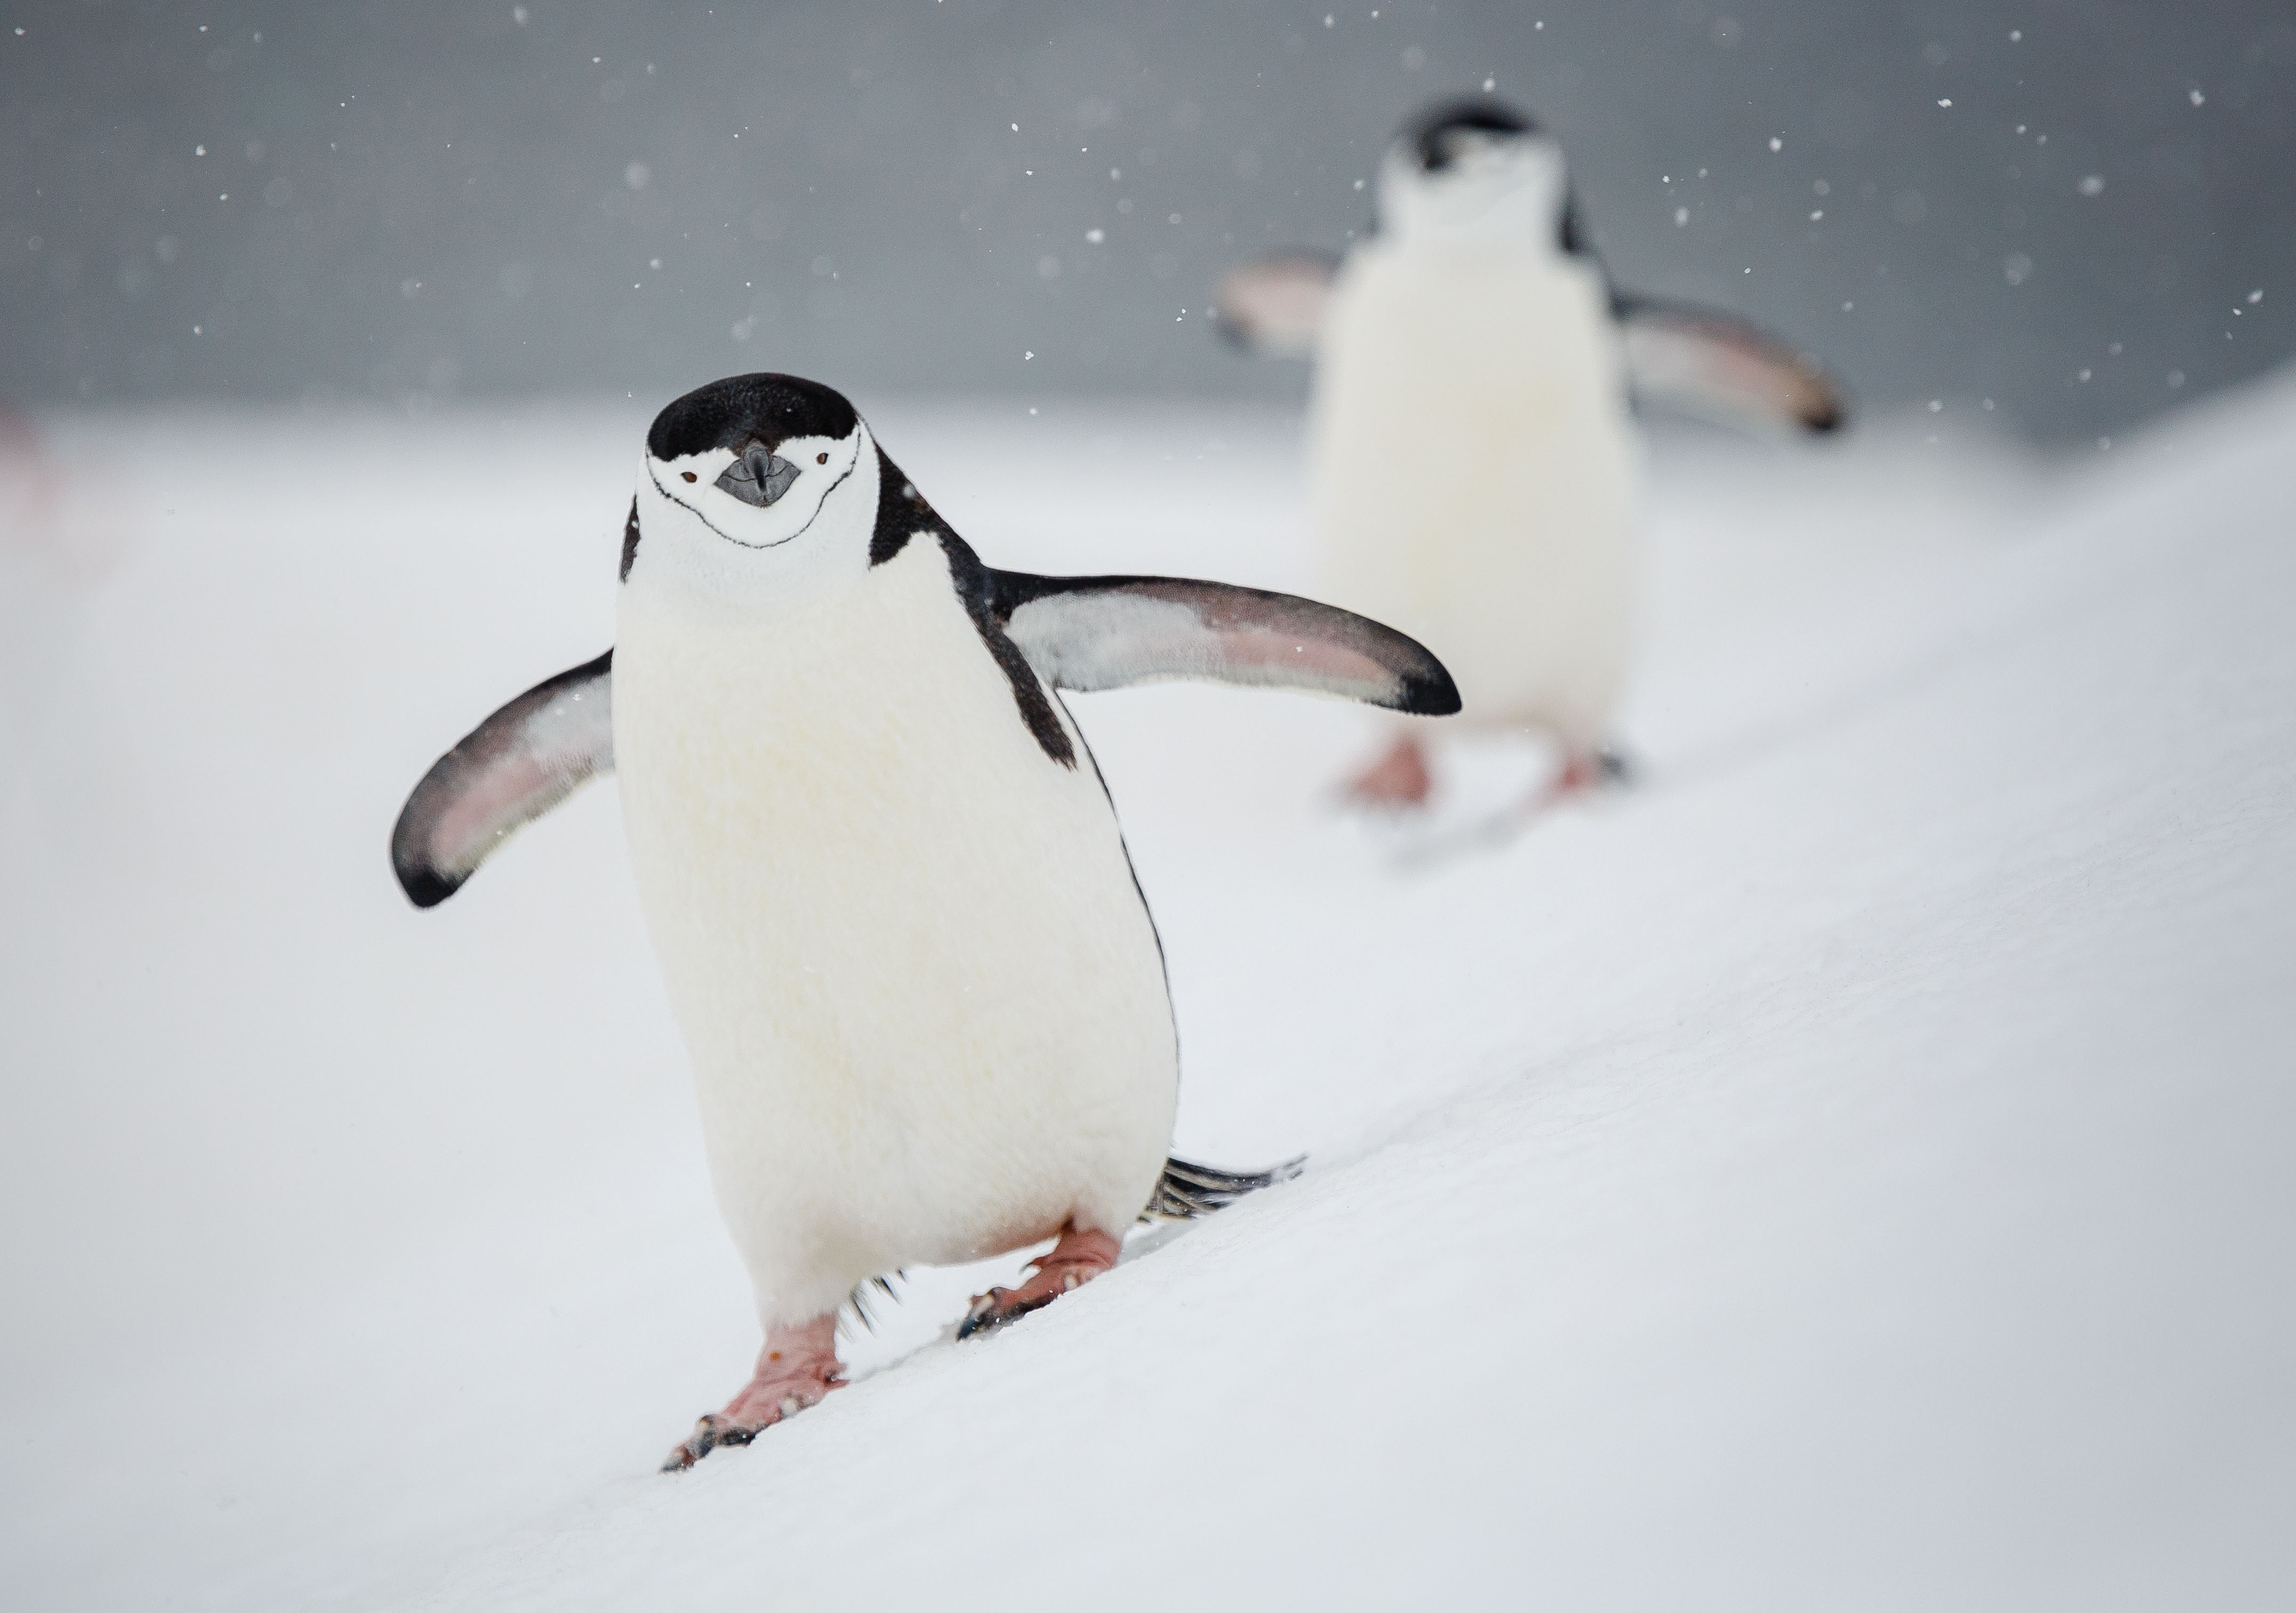 A pair of chinstrap penguins toddle down a snowy hill at Gourdin Island, Antarctica. Photo: Dave Merron